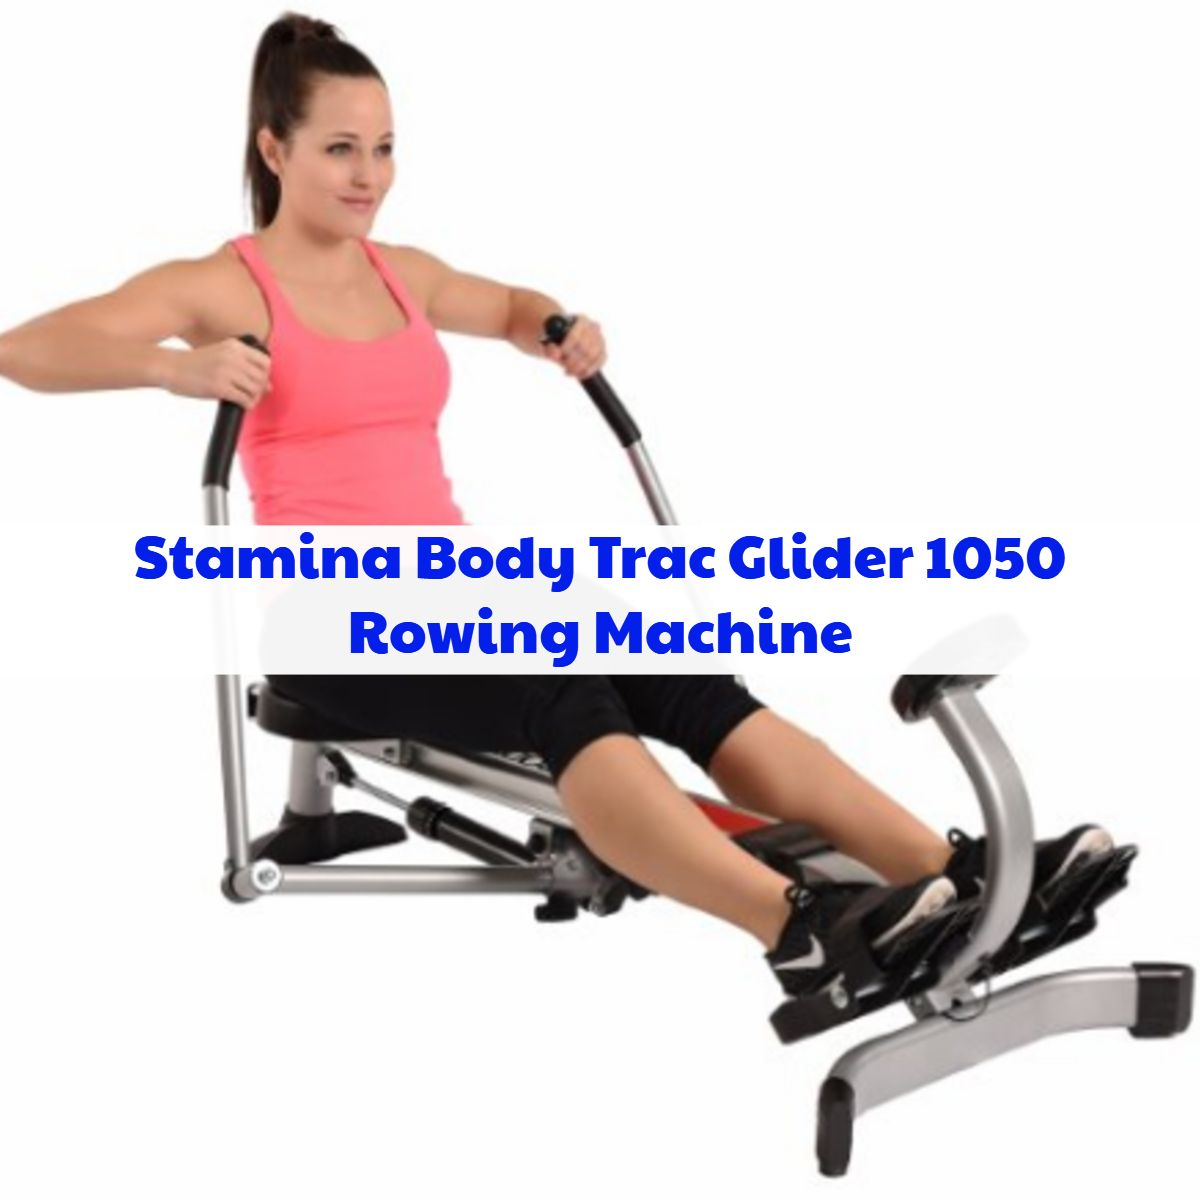 Stamina Rowing Machine Body Track Glider Home Gym Exercise Workout Equipment